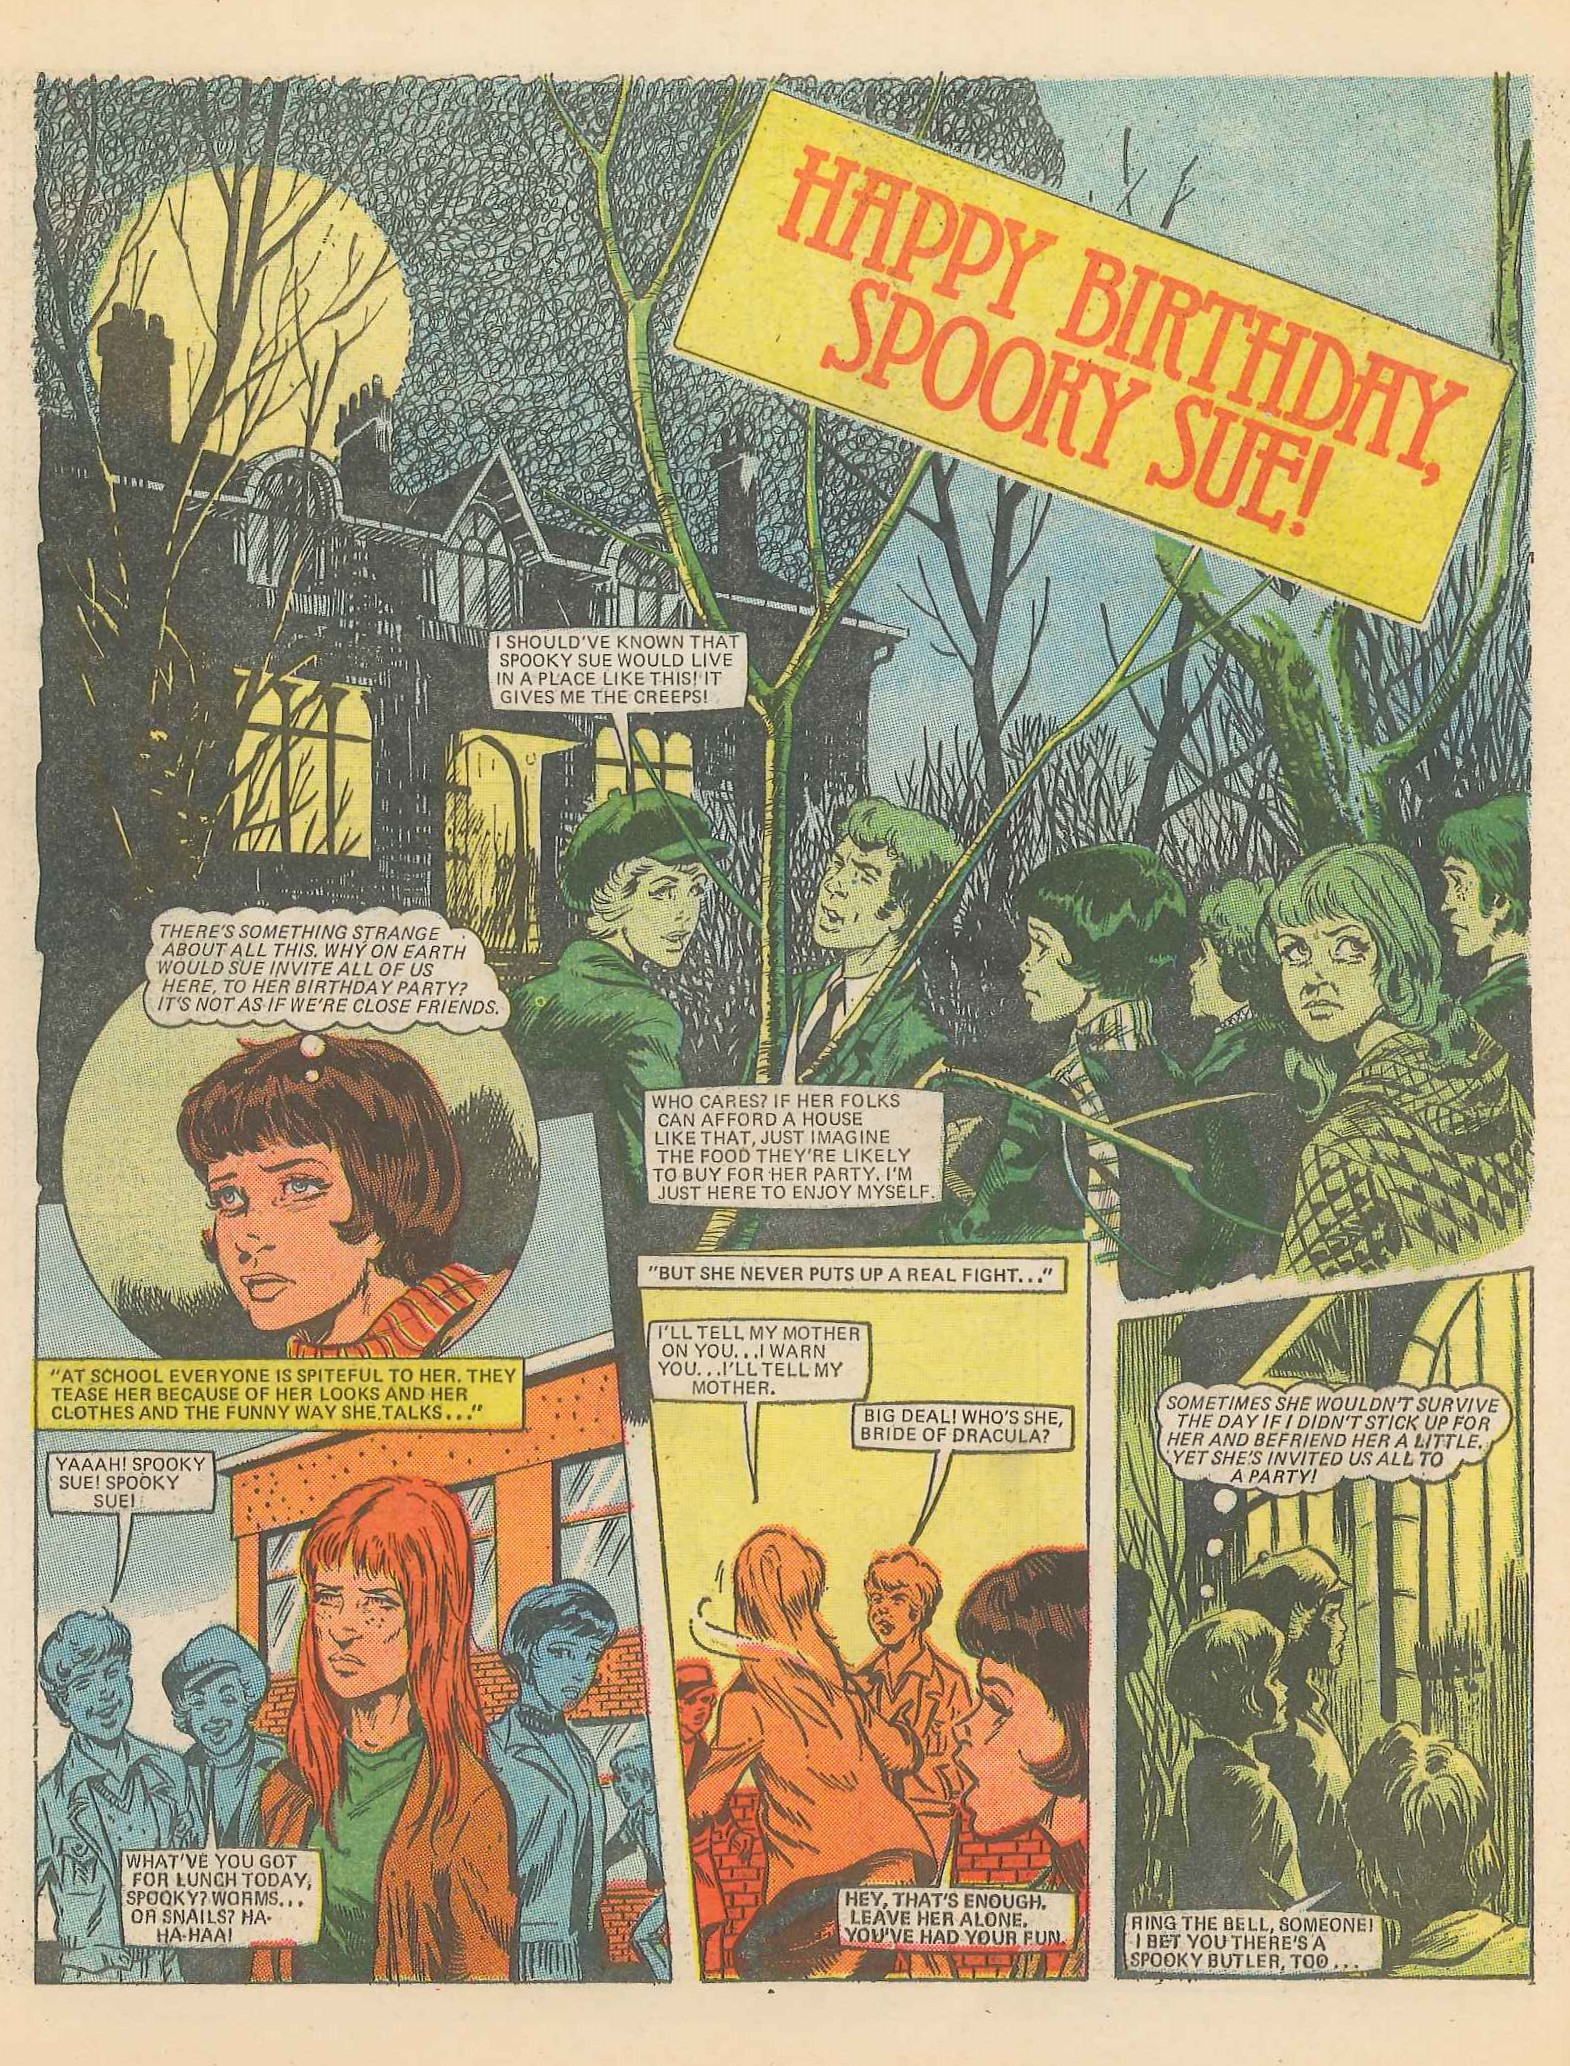 Happy Birthday, Spooky Sue!: John Richardson (artist)